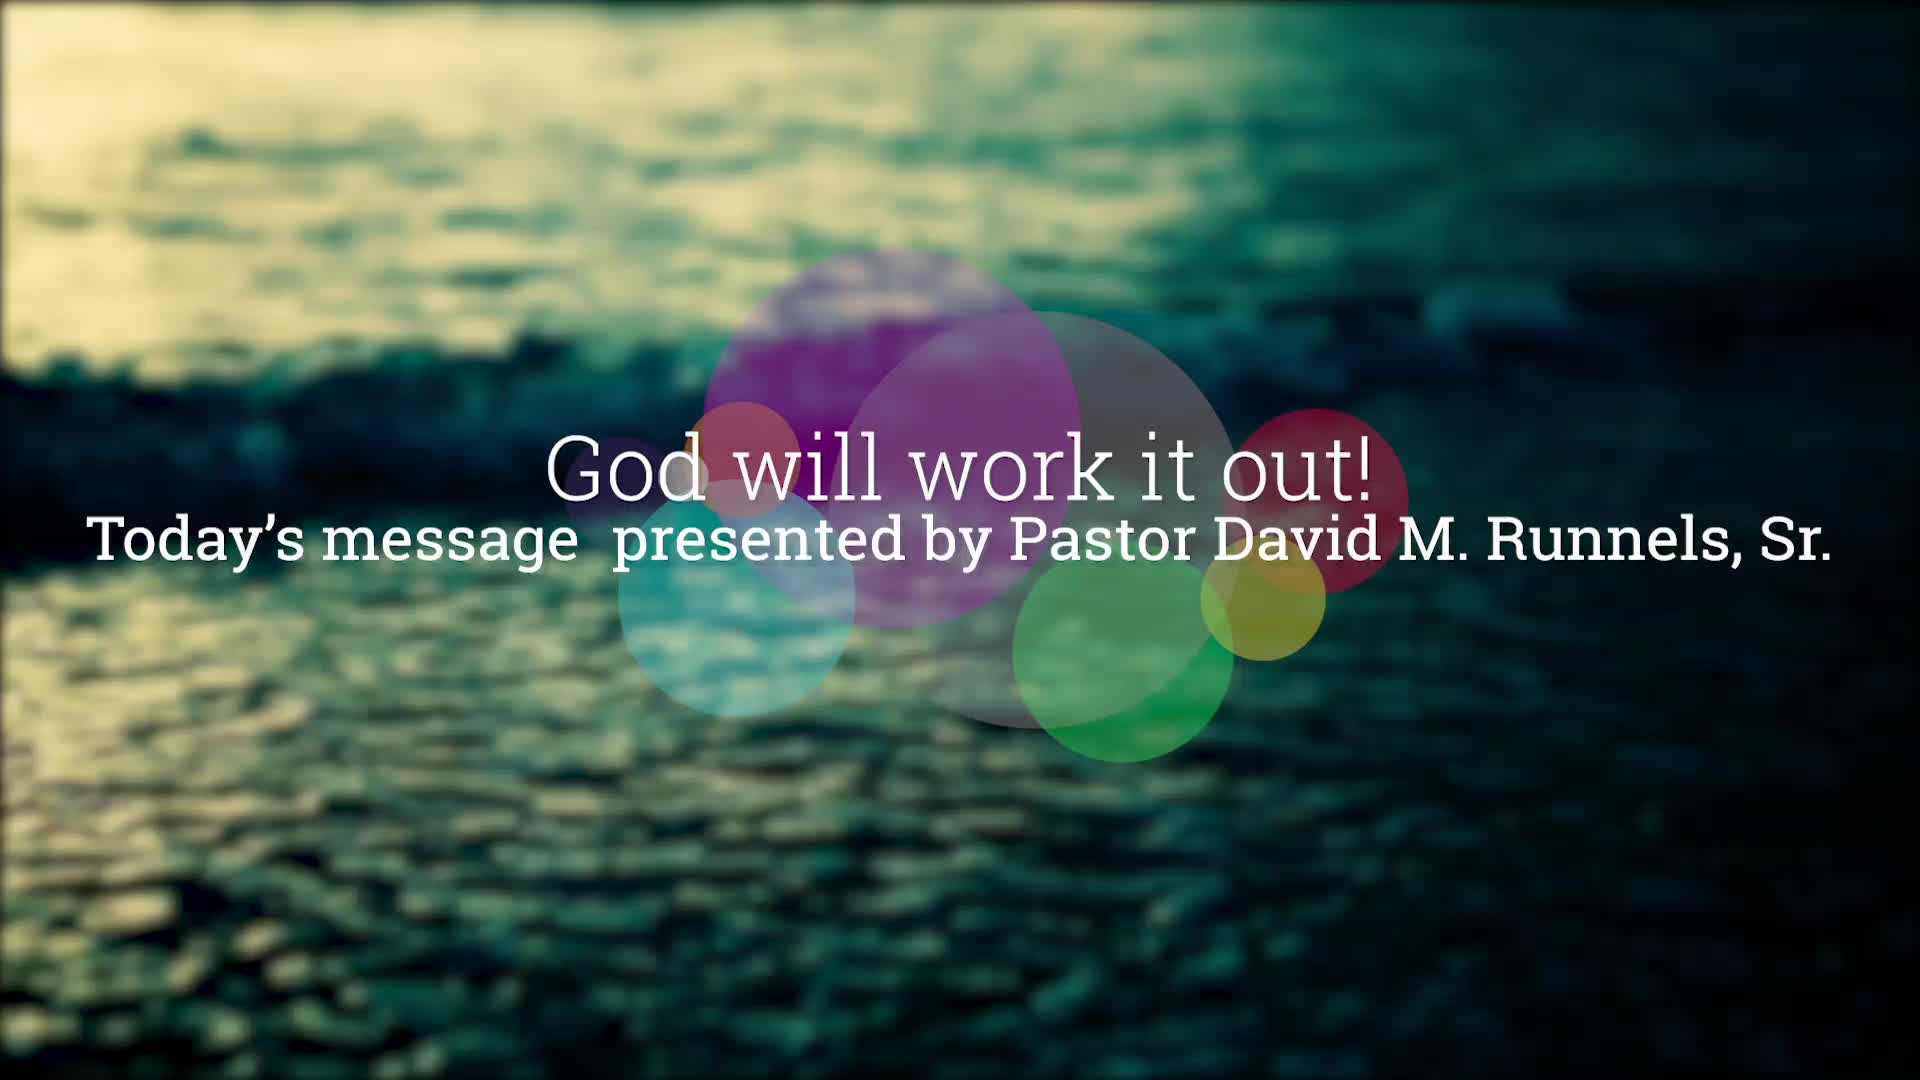 God will work it out